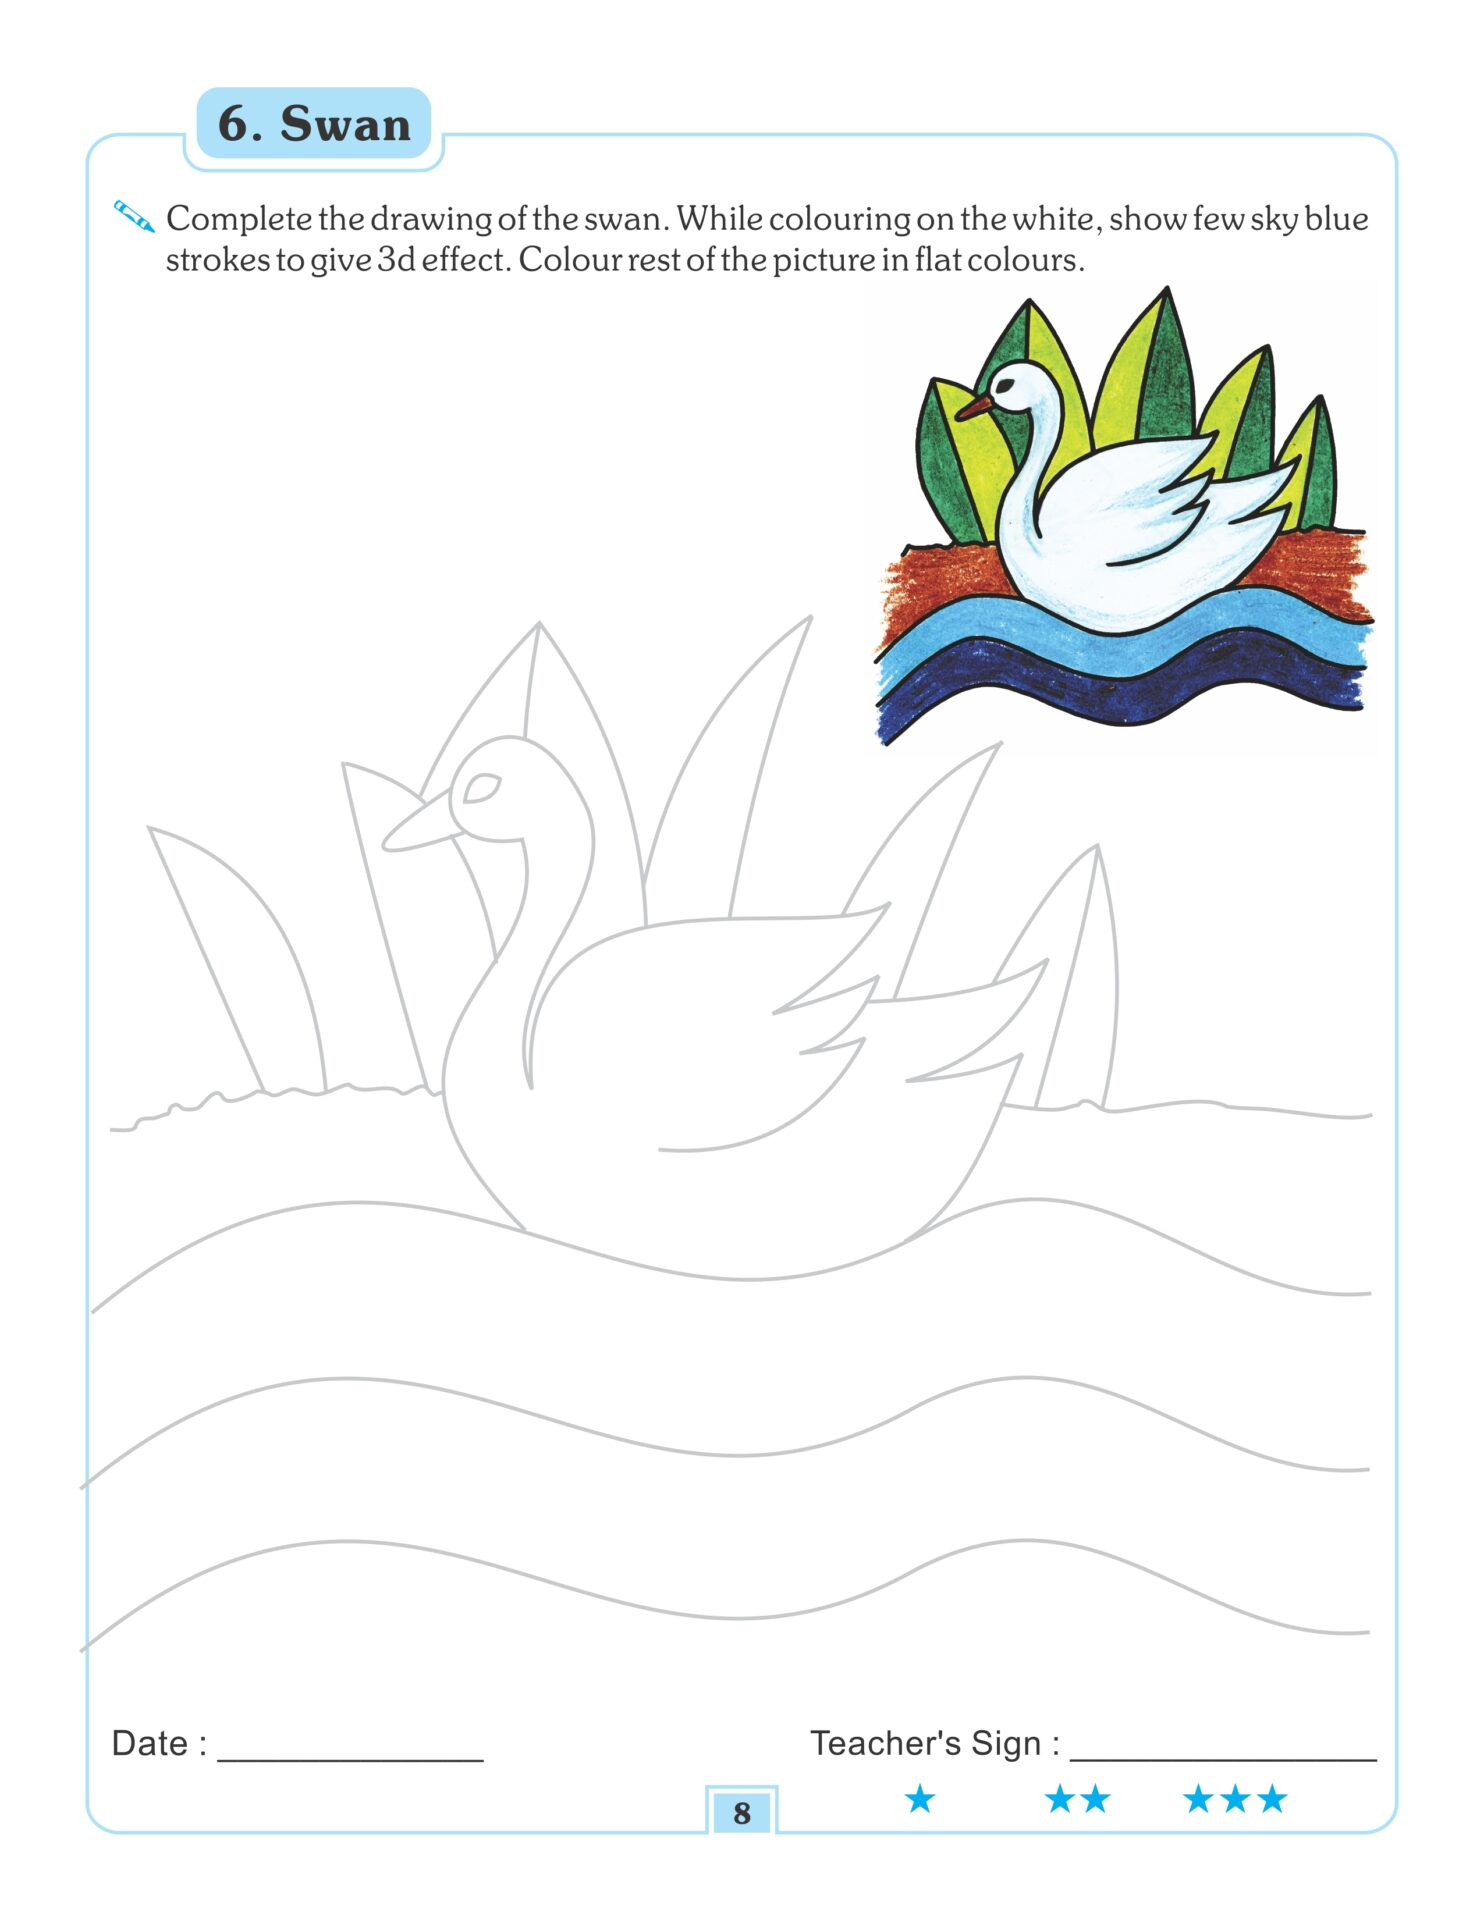 Nigam Drawing and Colouring Book 3 5